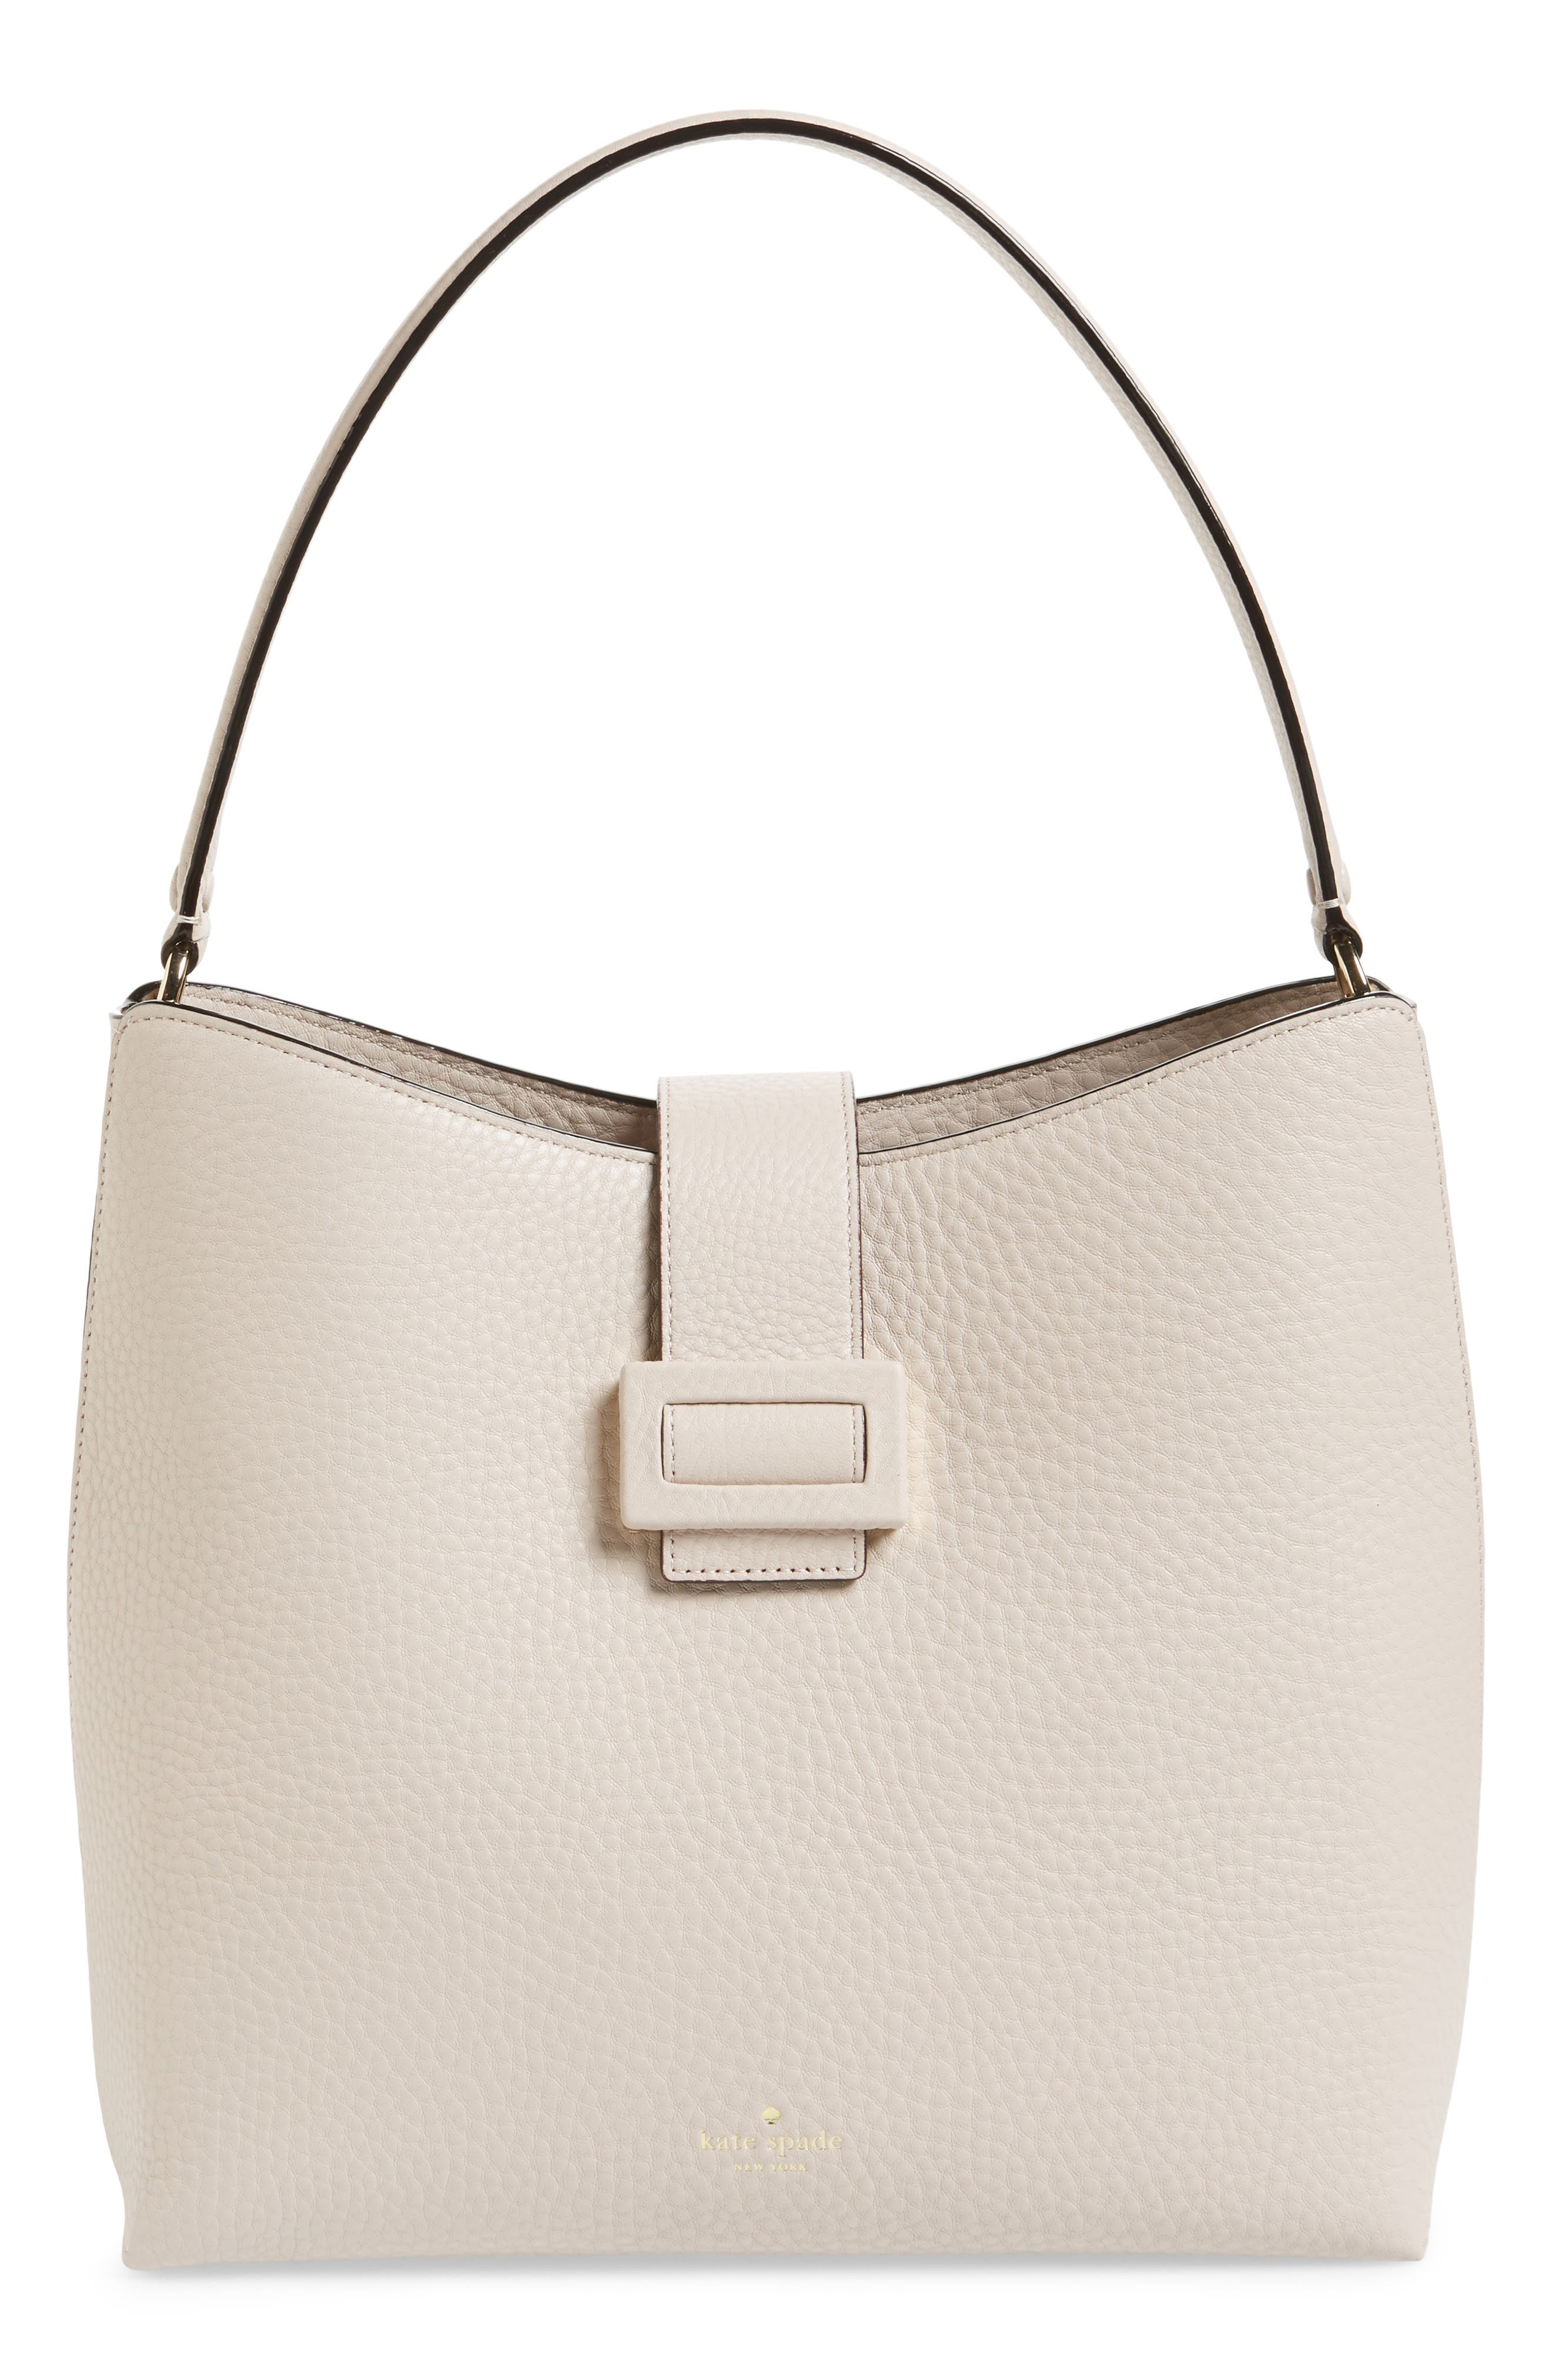 carlyle street – marea leather hobo,                             Main thumbnail 1, color,                             Warm Marshmallow